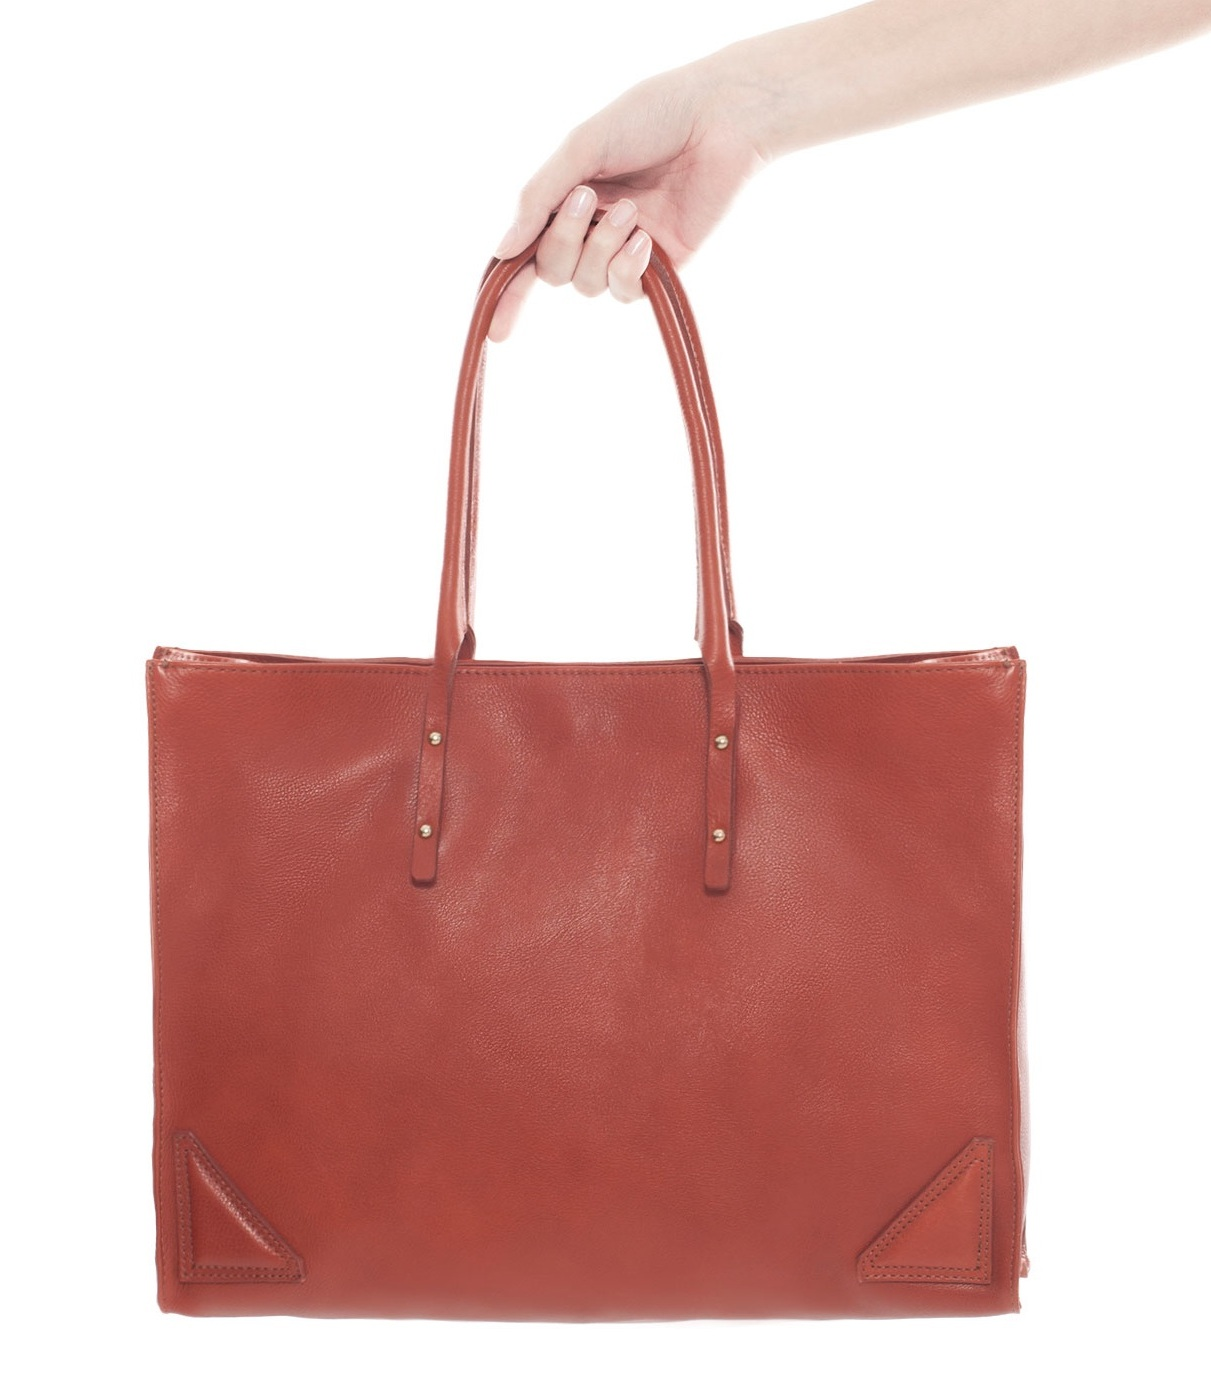 bag muslim Find great deals on ebay for muslin bags and cotton drawstring bag shop with confidence.